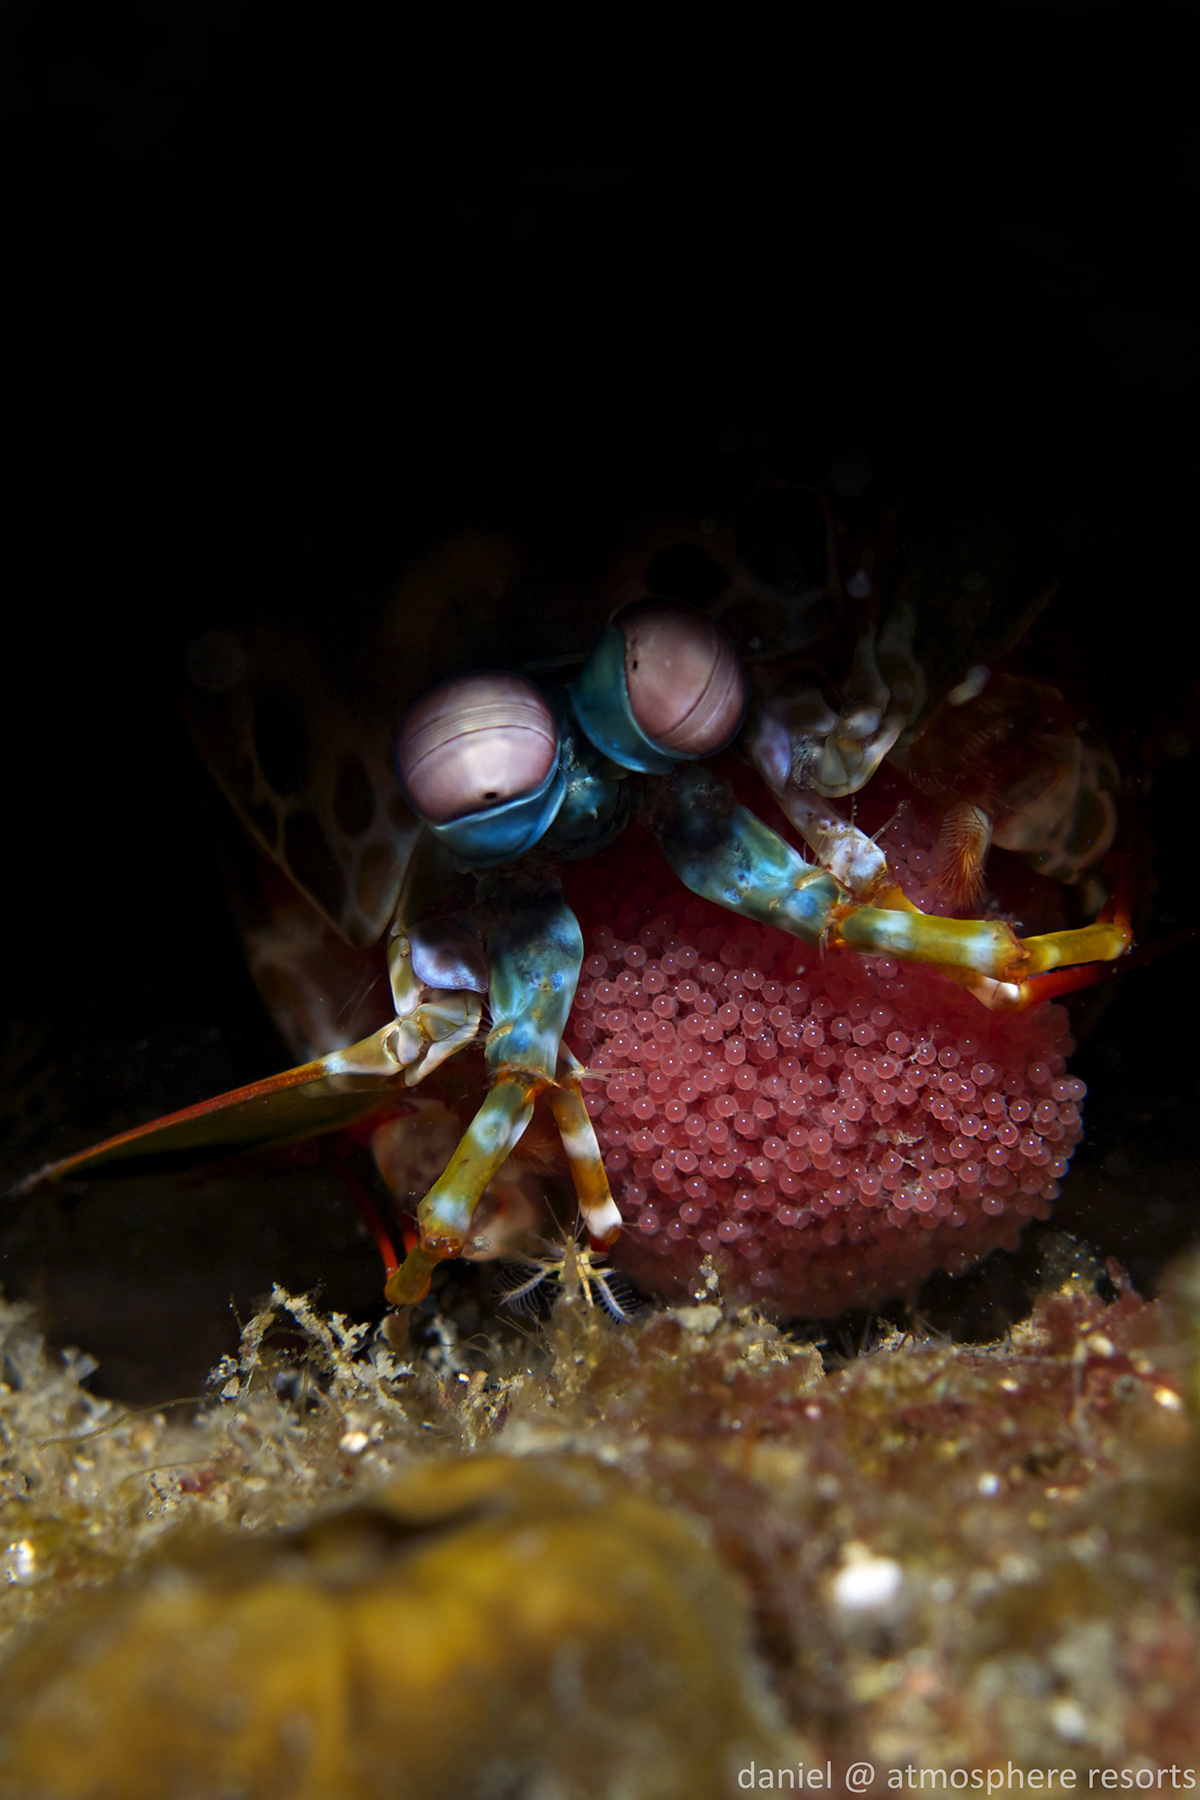 Mantis Shrimp with Eggs by Daniel Geary